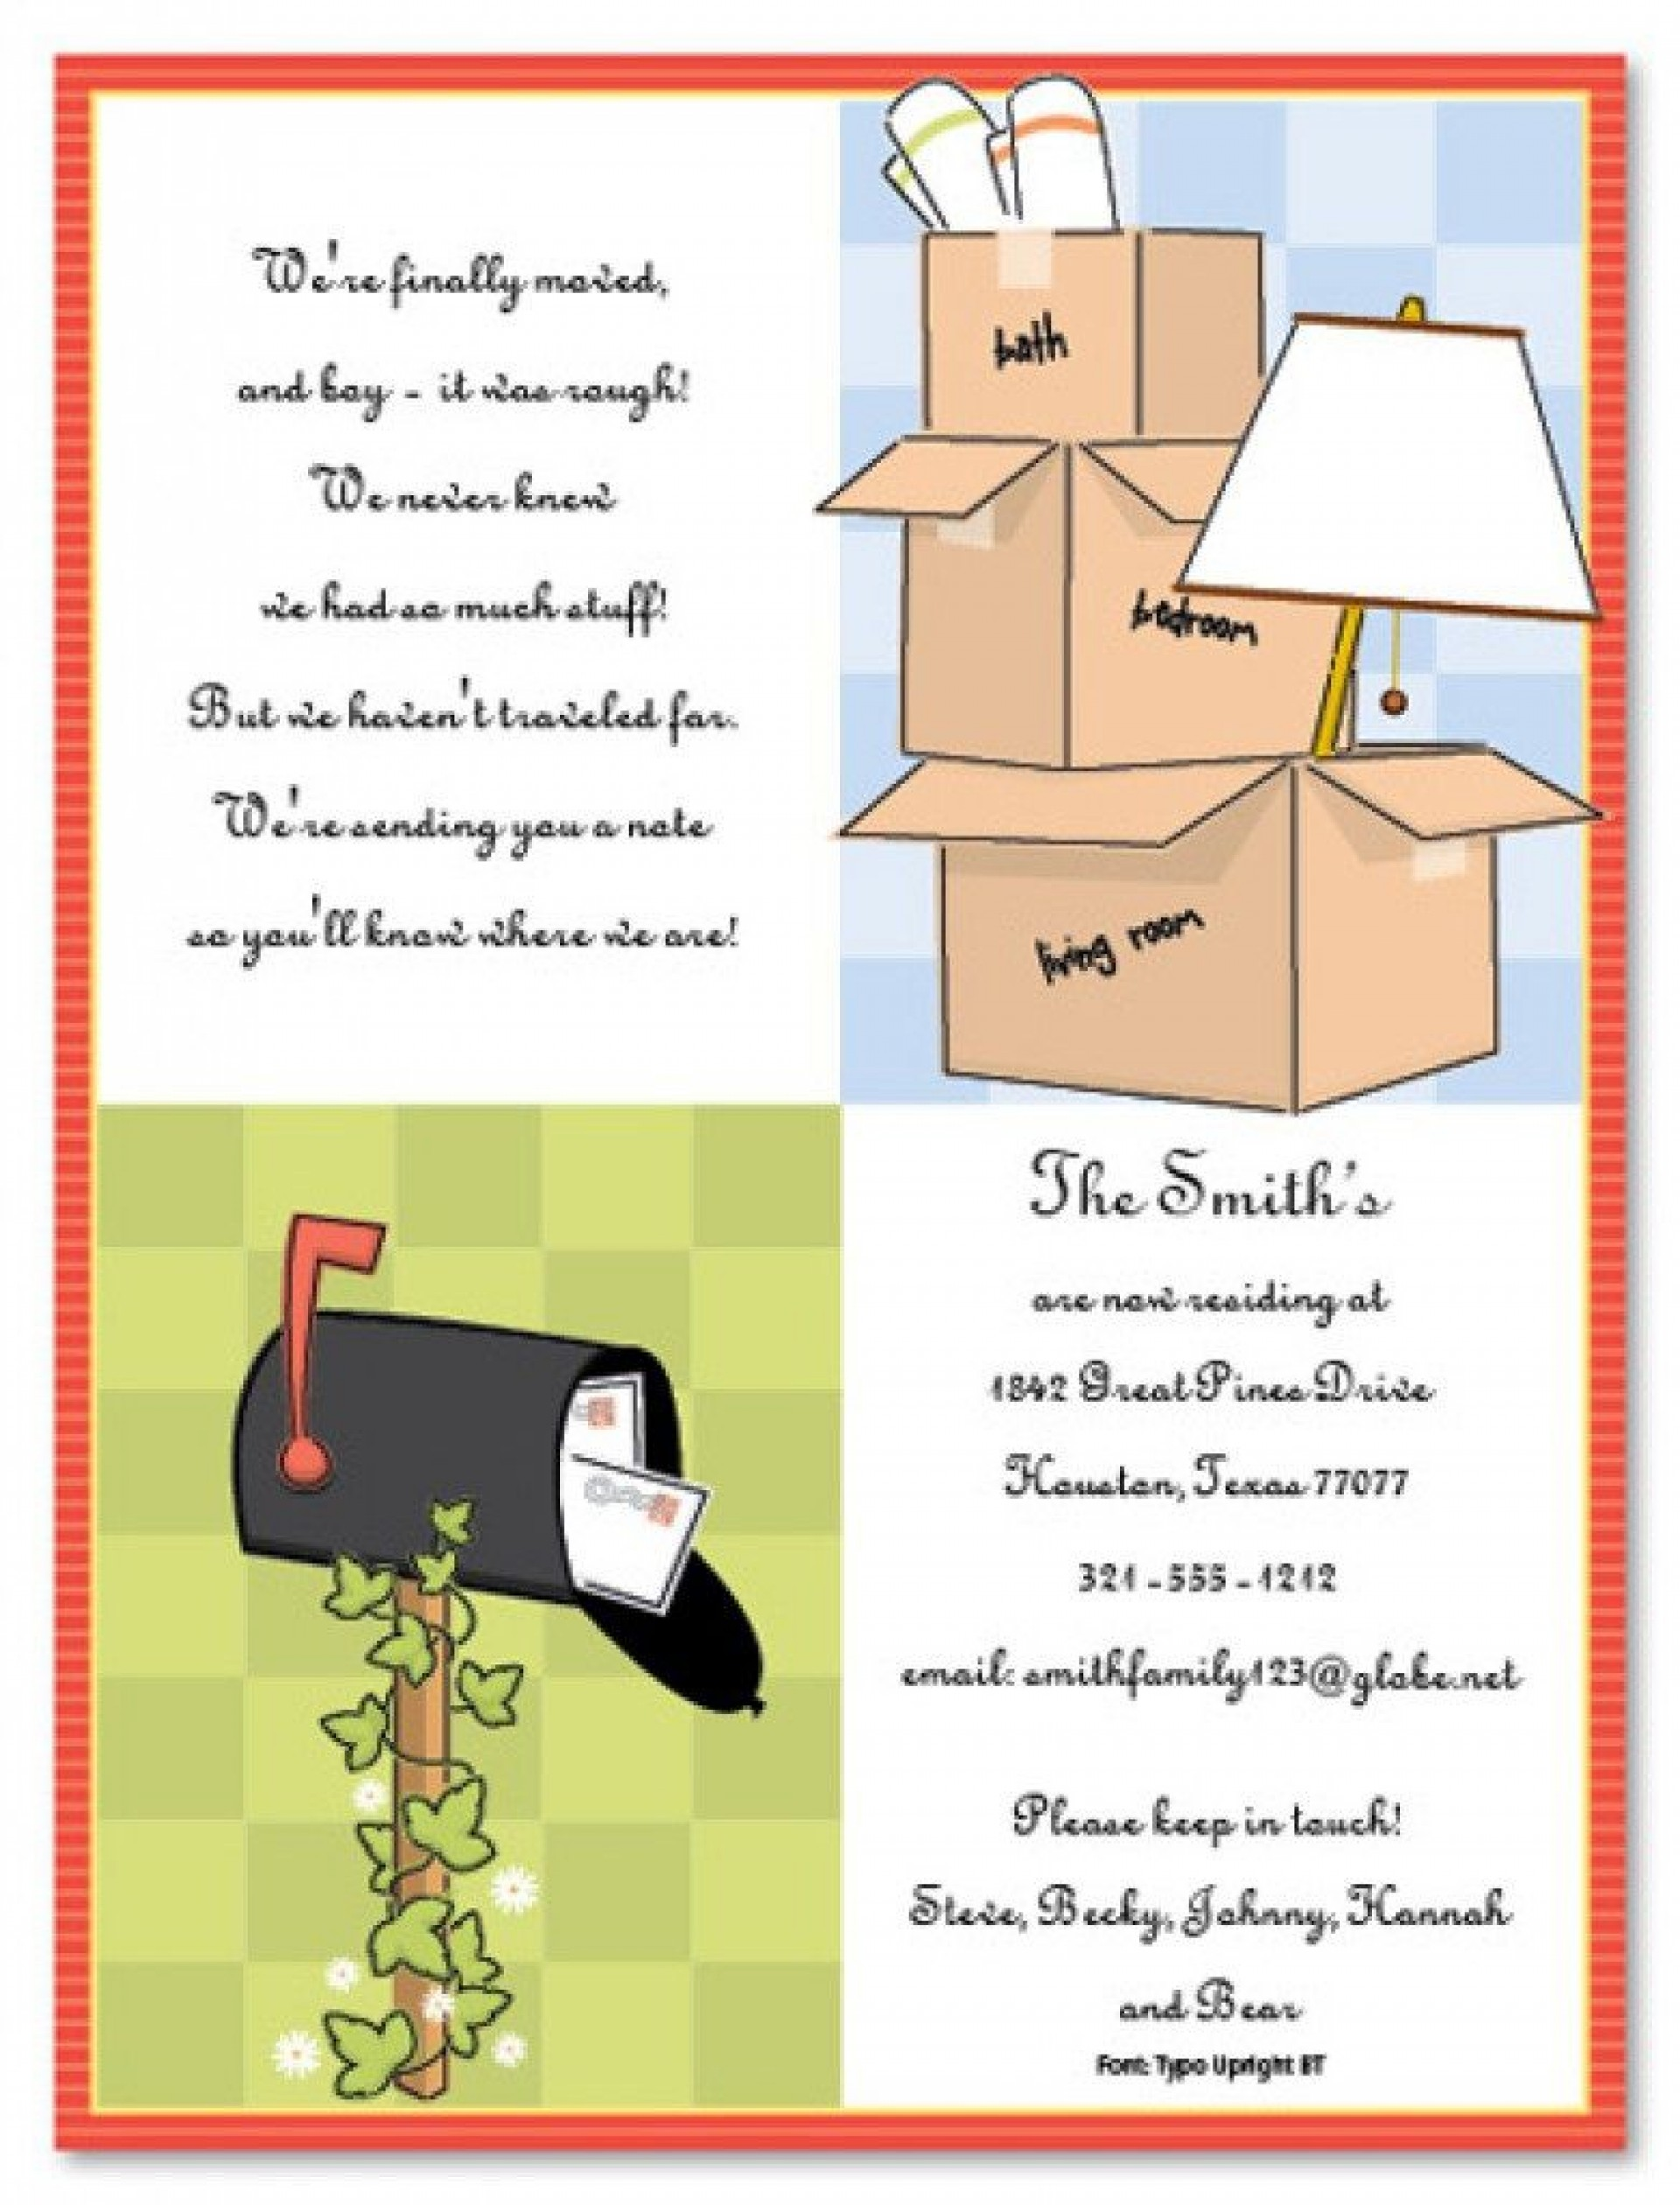 005 Beautiful Free Housewarming Invitation Template Highest Clarity  Templates Printable India Video Download1920